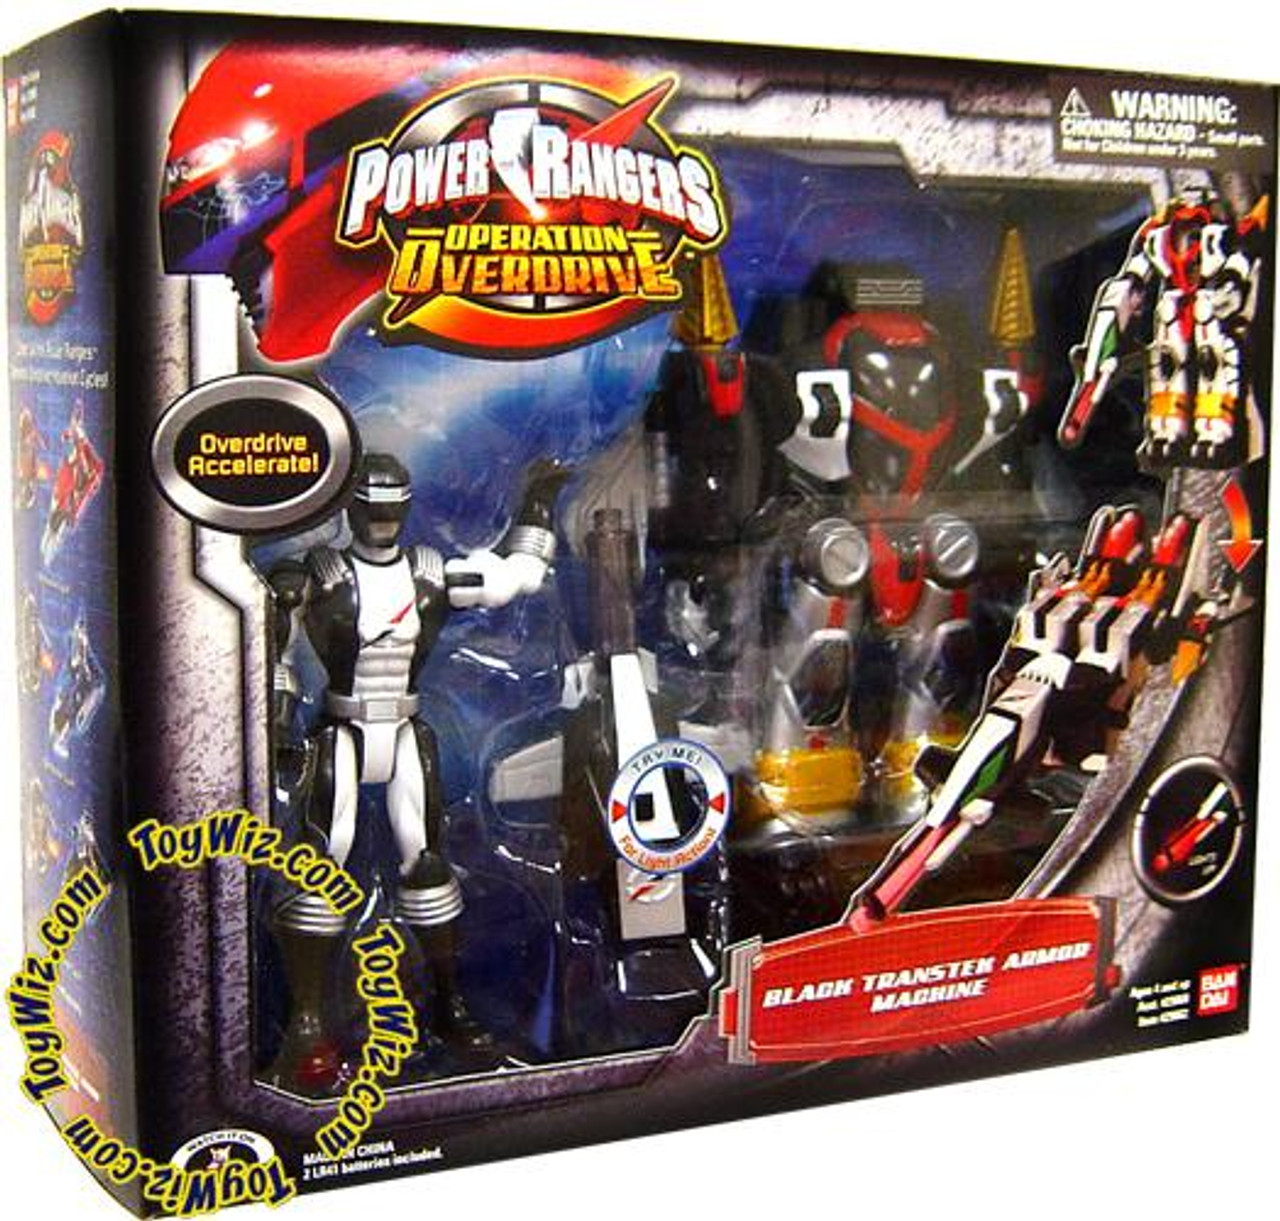 Power Rangers Operation Overdrive Black Transtek Armor Machine Action Figure Set